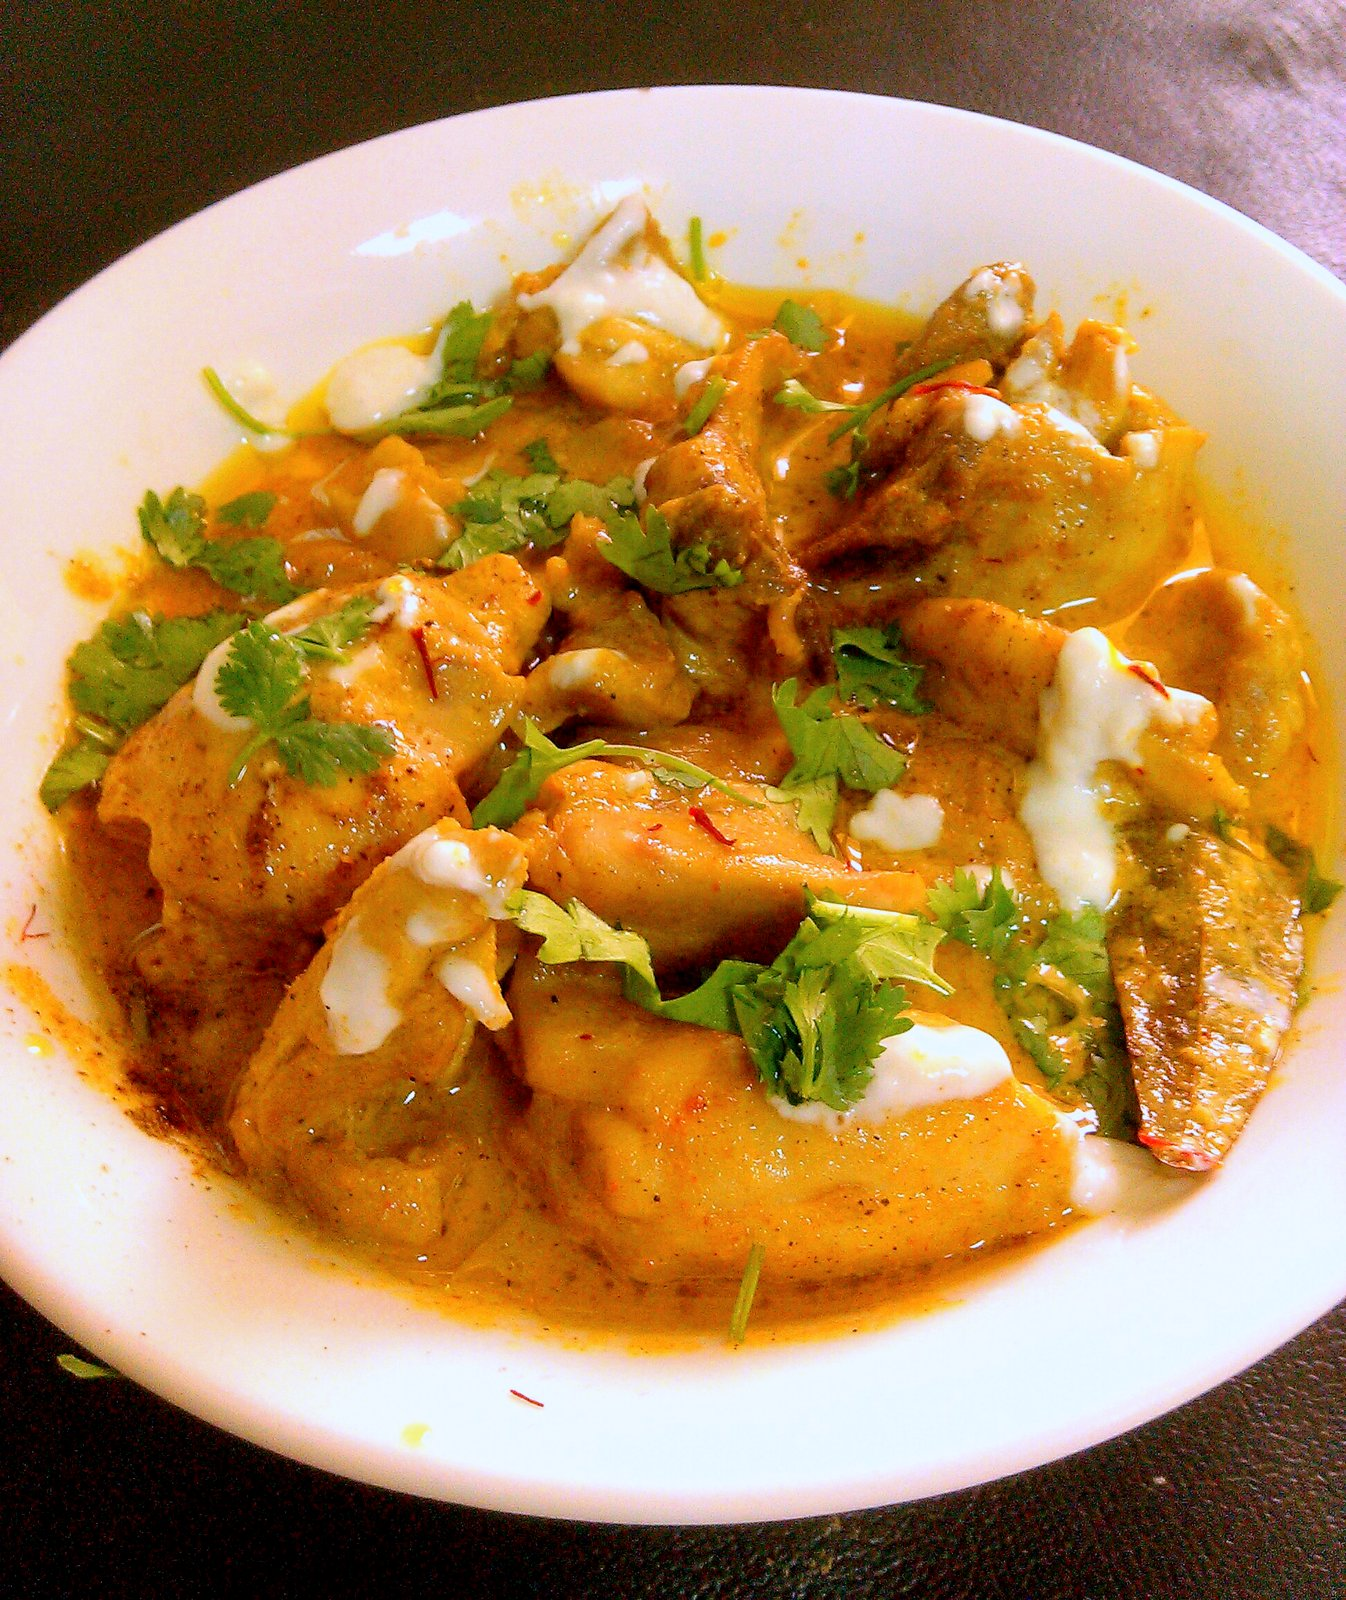 Mughlai zafrani murg recipe by archanas kitchen a completely no oil healthy recipe made by microwaving the marinated chicken along with yogurt forumfinder Choice Image